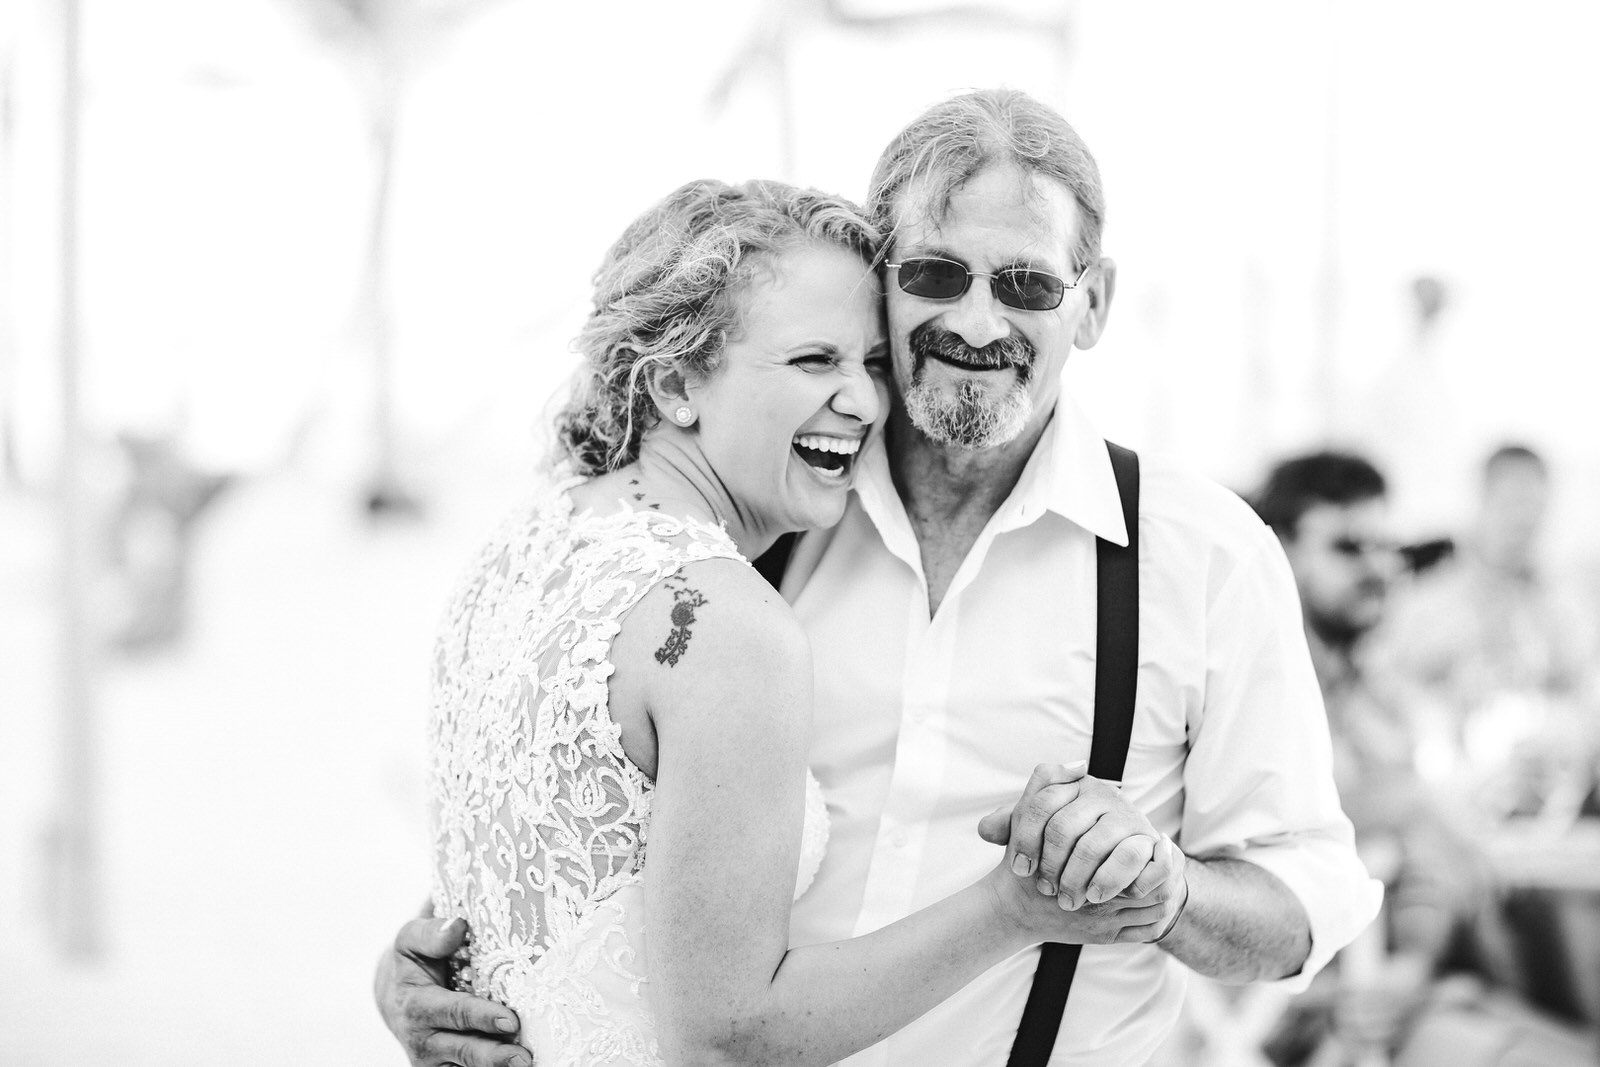 laughter_father_daughter_dance_black_and_white_moment.jpg